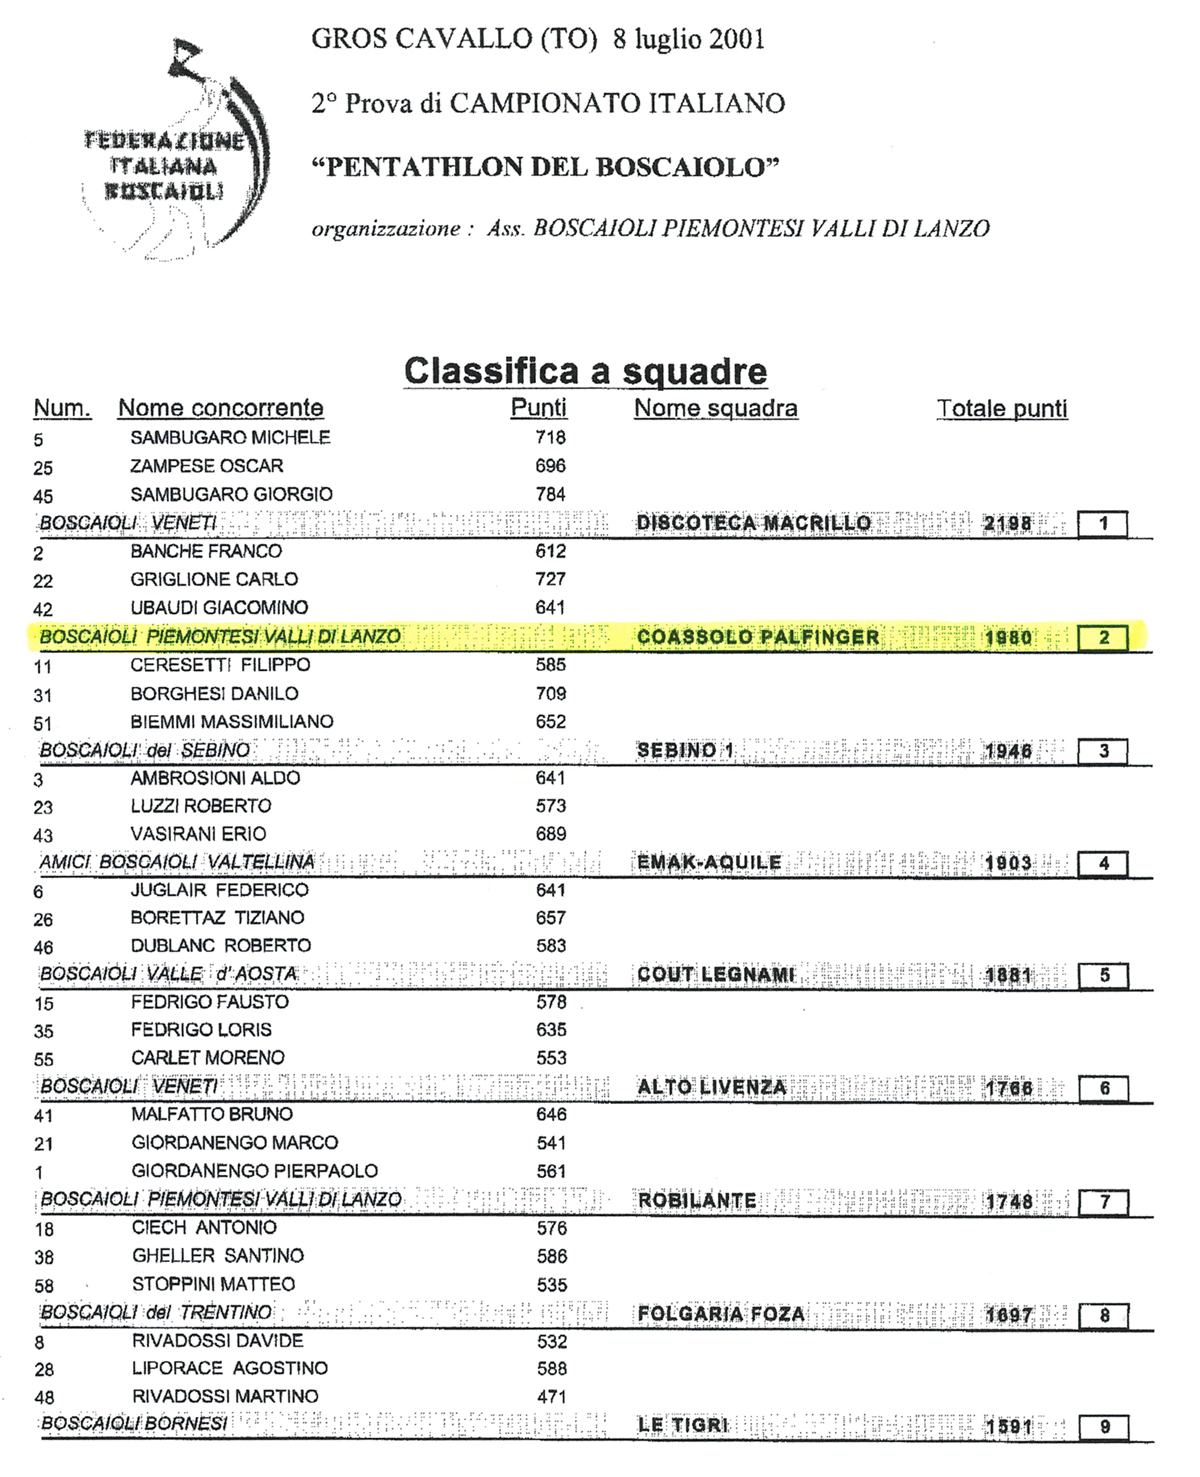 Classifica del 8 luglio 2001 a Groscavallo (TO)